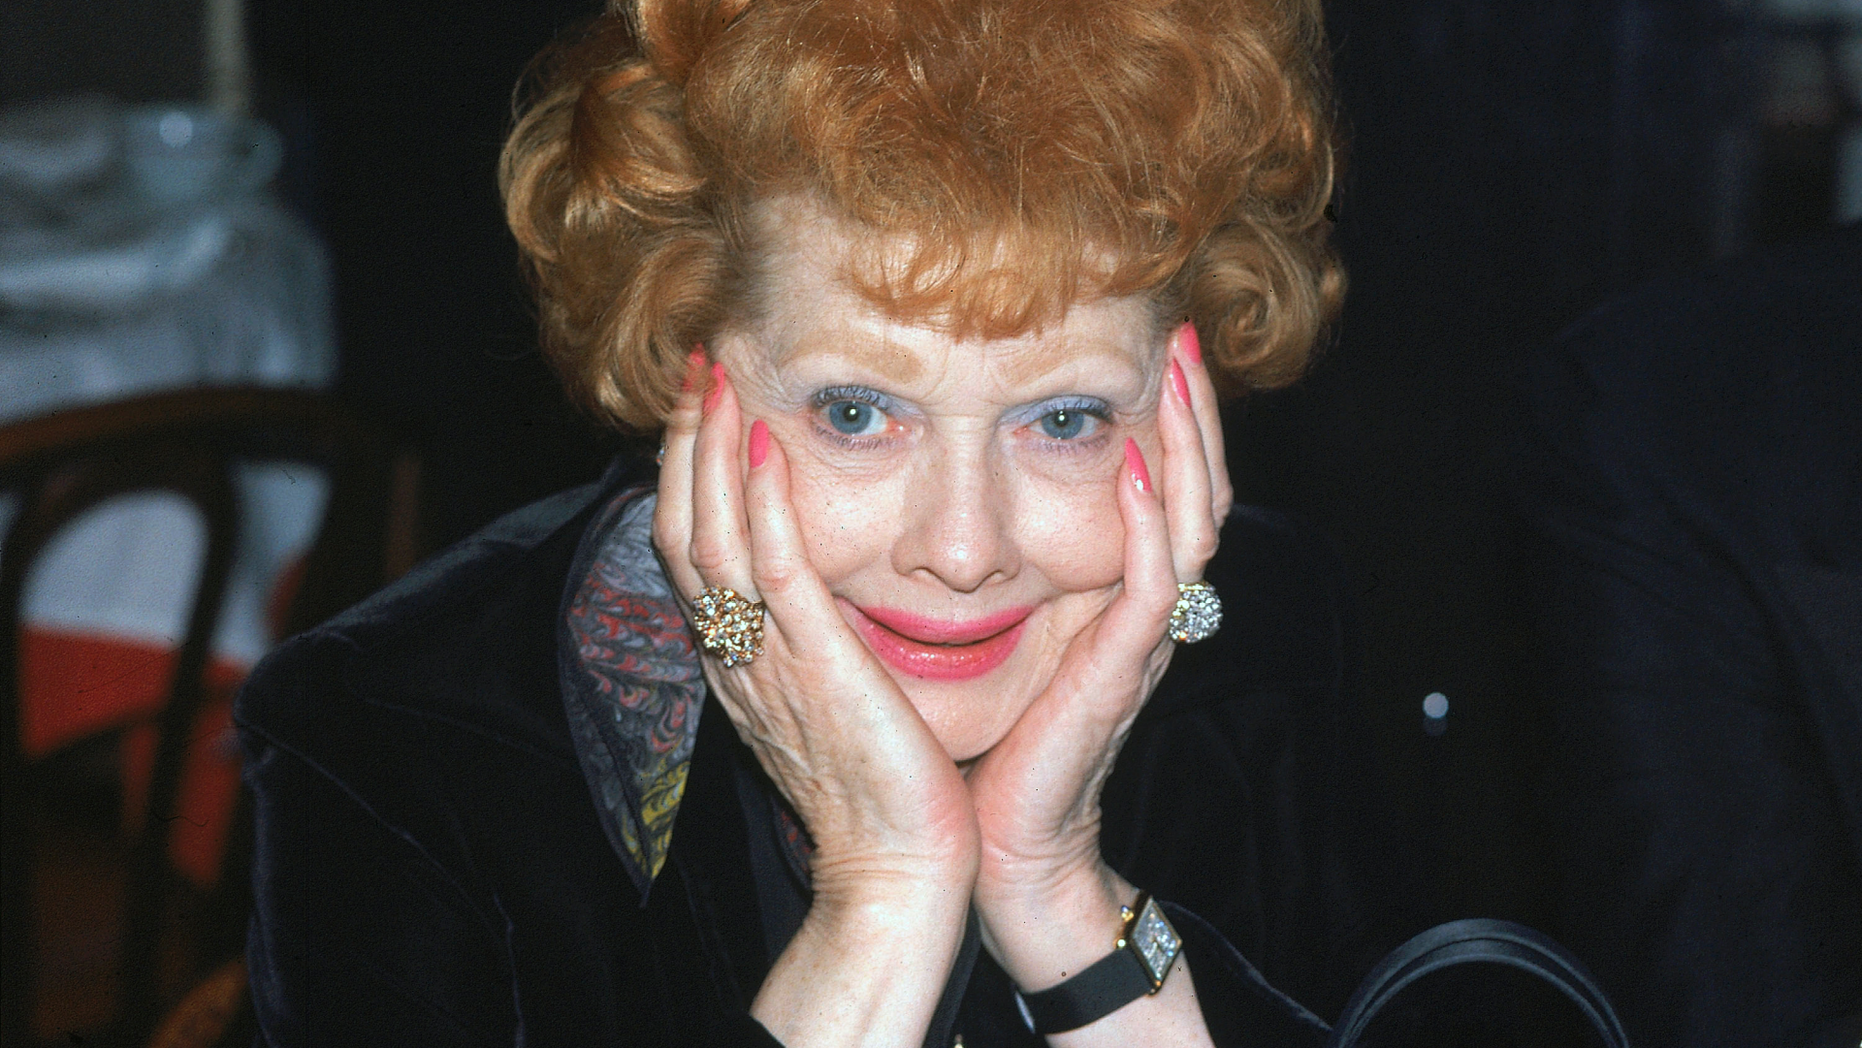 FILE - This Feb. 11, 1979 file photo shows actress-comedian Lucille Ball at a restaurant in New York. On Friday, April 26, 2019, the National Comedy Center in the late actress's hometown announced plans to digitize the archives of the Lucille Ball Desi Arnaz Museum. (AP Photo)